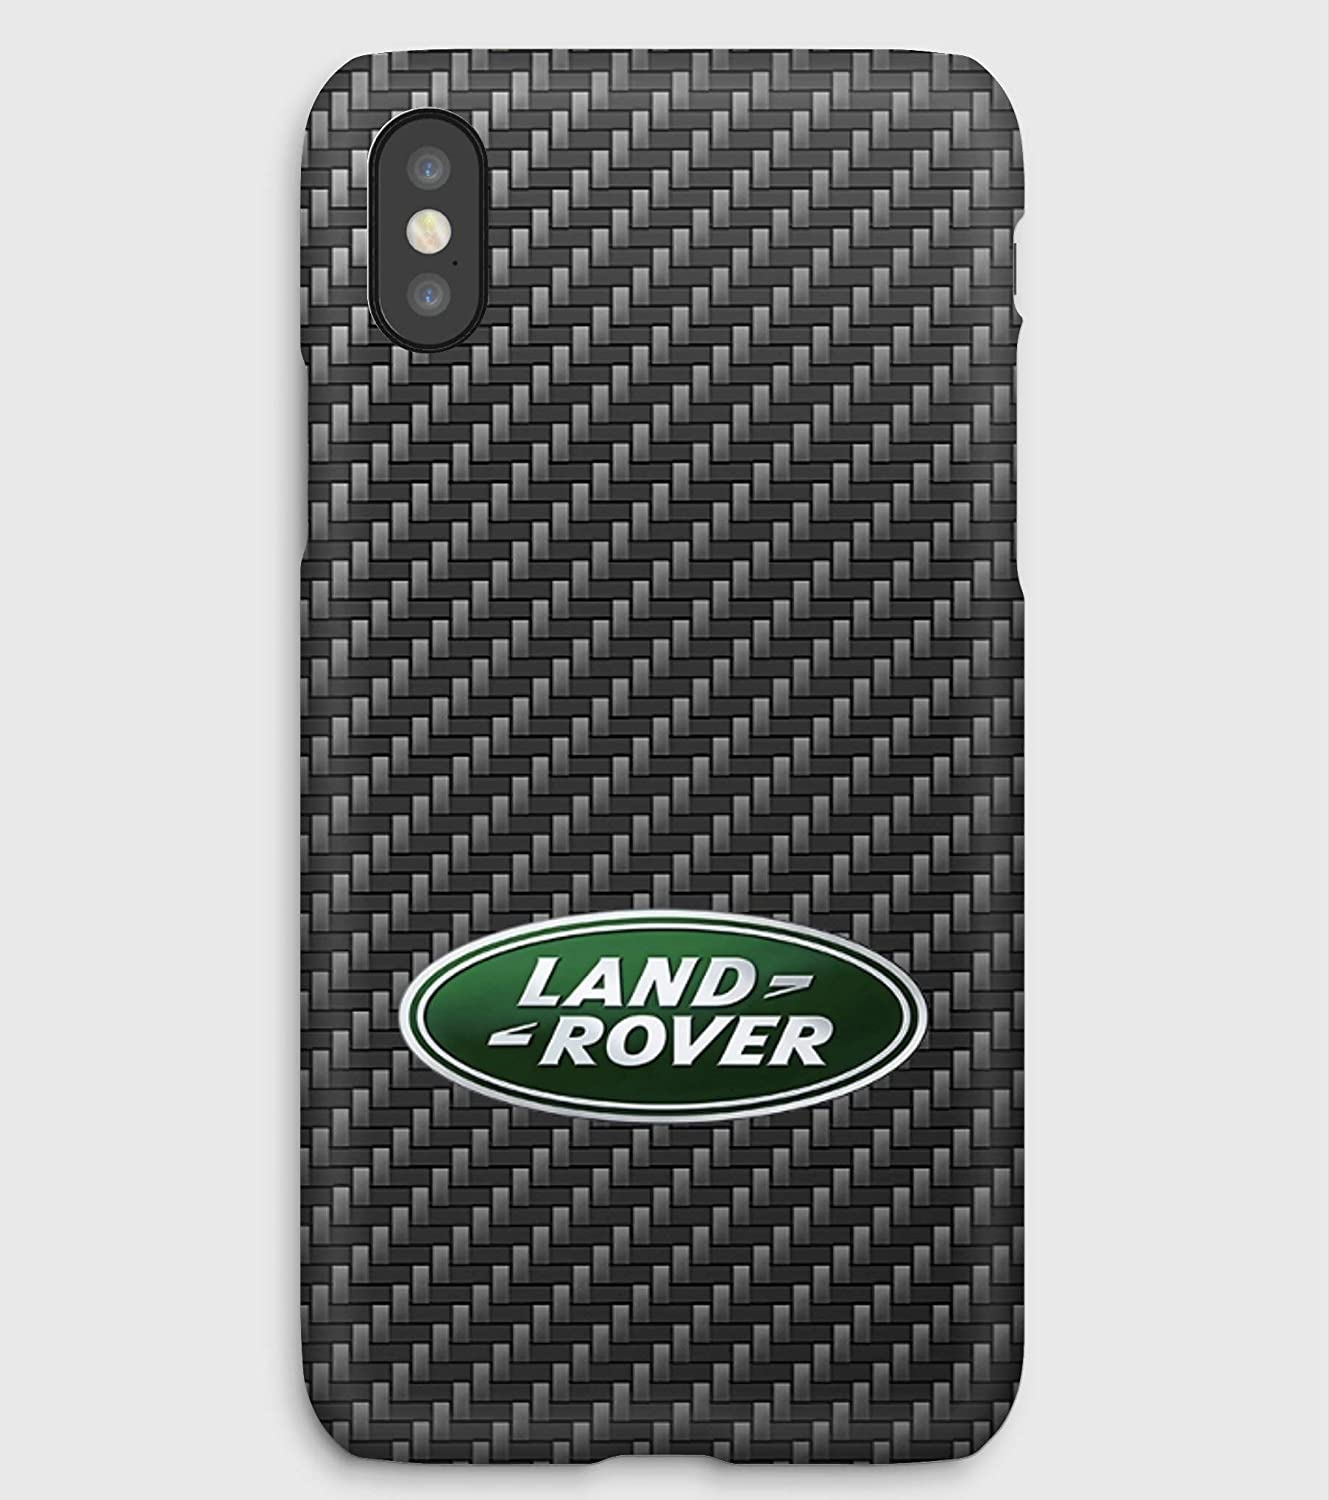 Carbon & Land Rover, coque pour iPhone XS, XS Max, XR, X, 8, 8+, 7, 7+, 6S, 6, 6S+, 6+, 5C, 5, 5S, 5SE, 4S, 4,